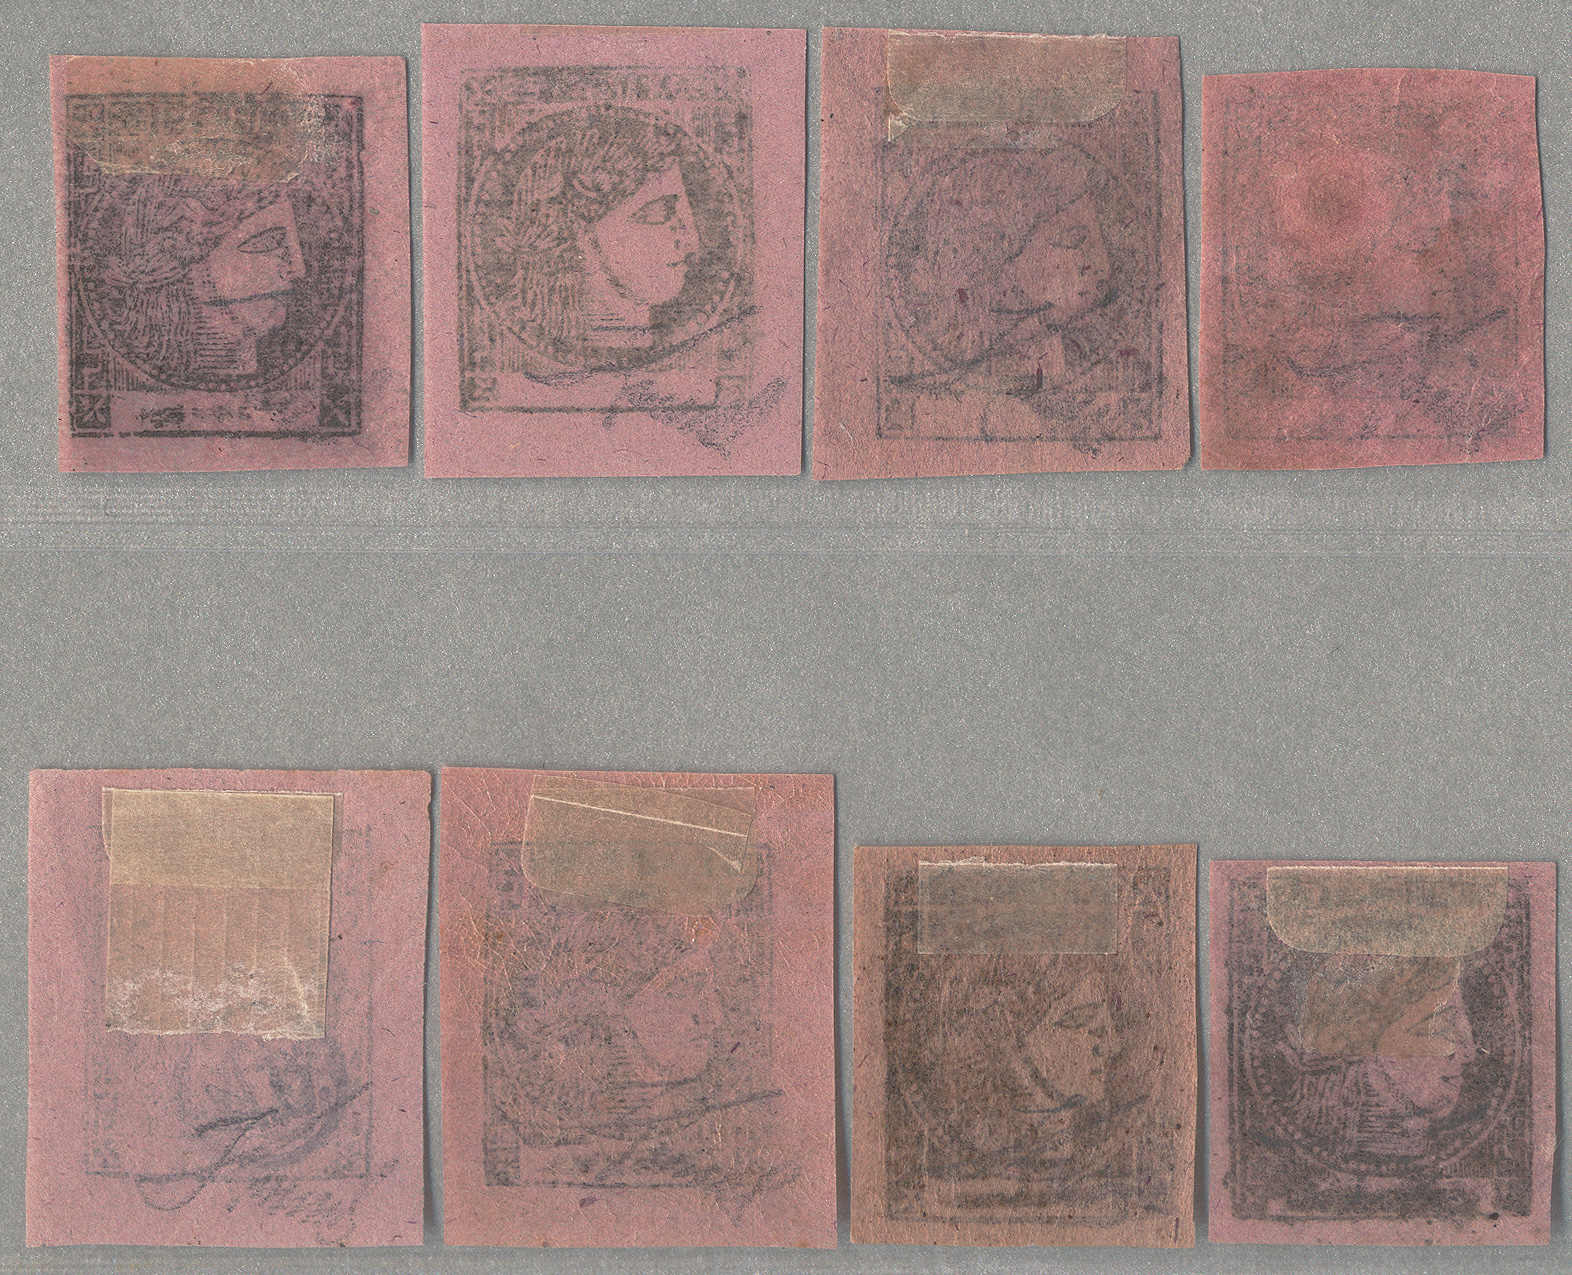 Lot 15159 - America, South/Middle/Caribbean Argentina -  classicphil GmbH 8'th classicphil Auction - Day 2